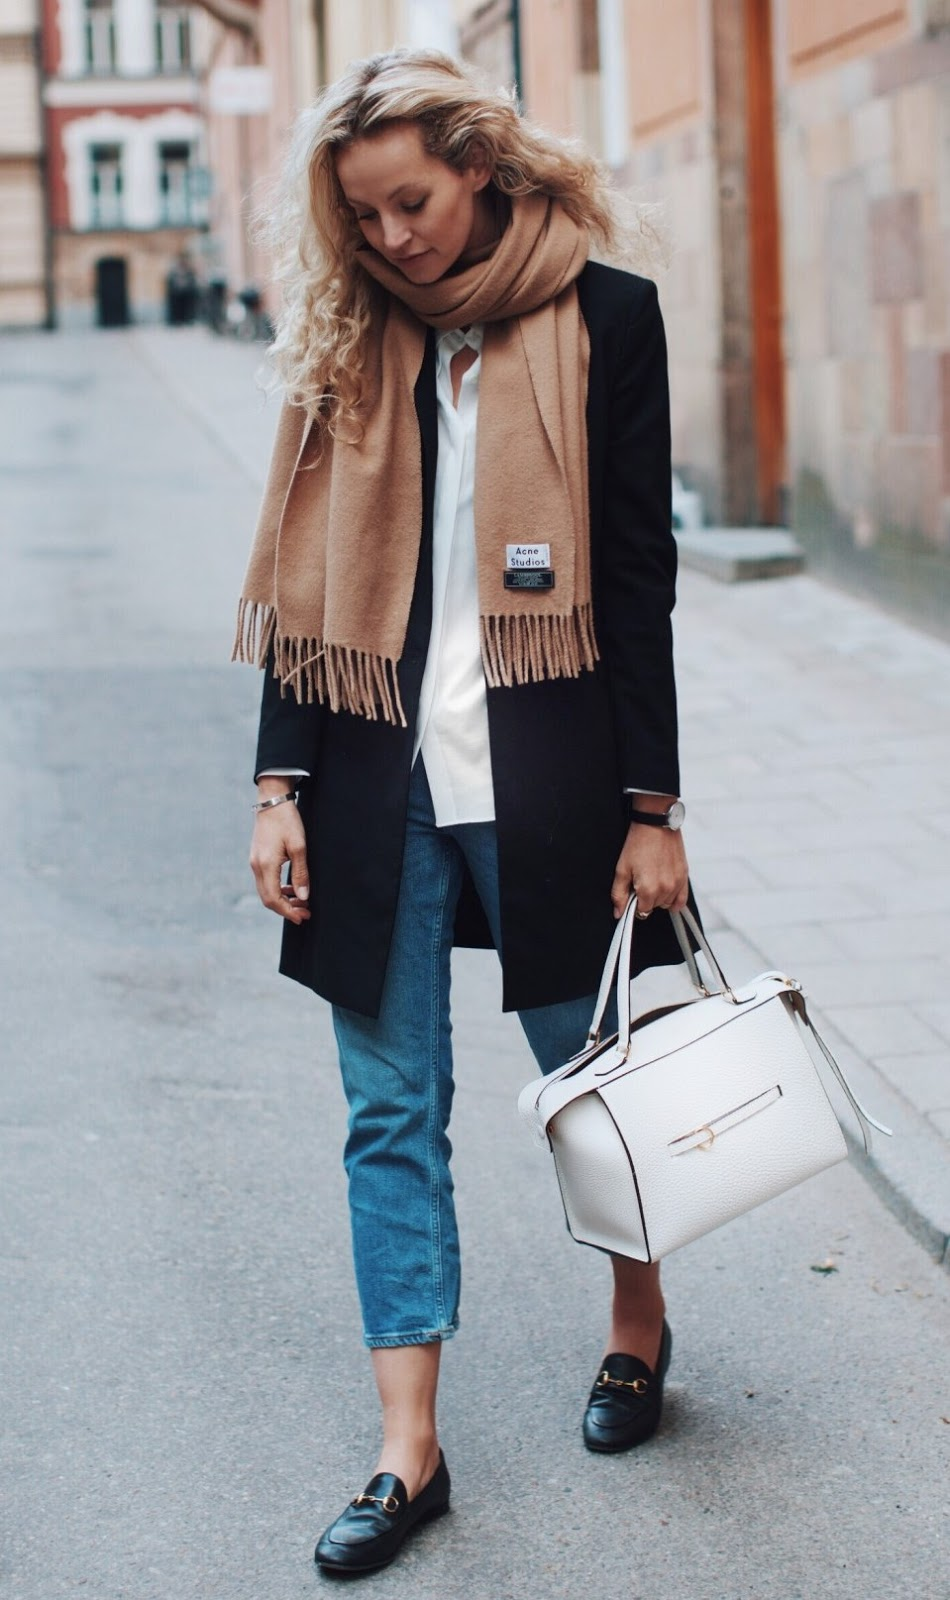 winter casual outfit inspiration / blazer + brown scarf + white shirt + jeans + bag + loafers